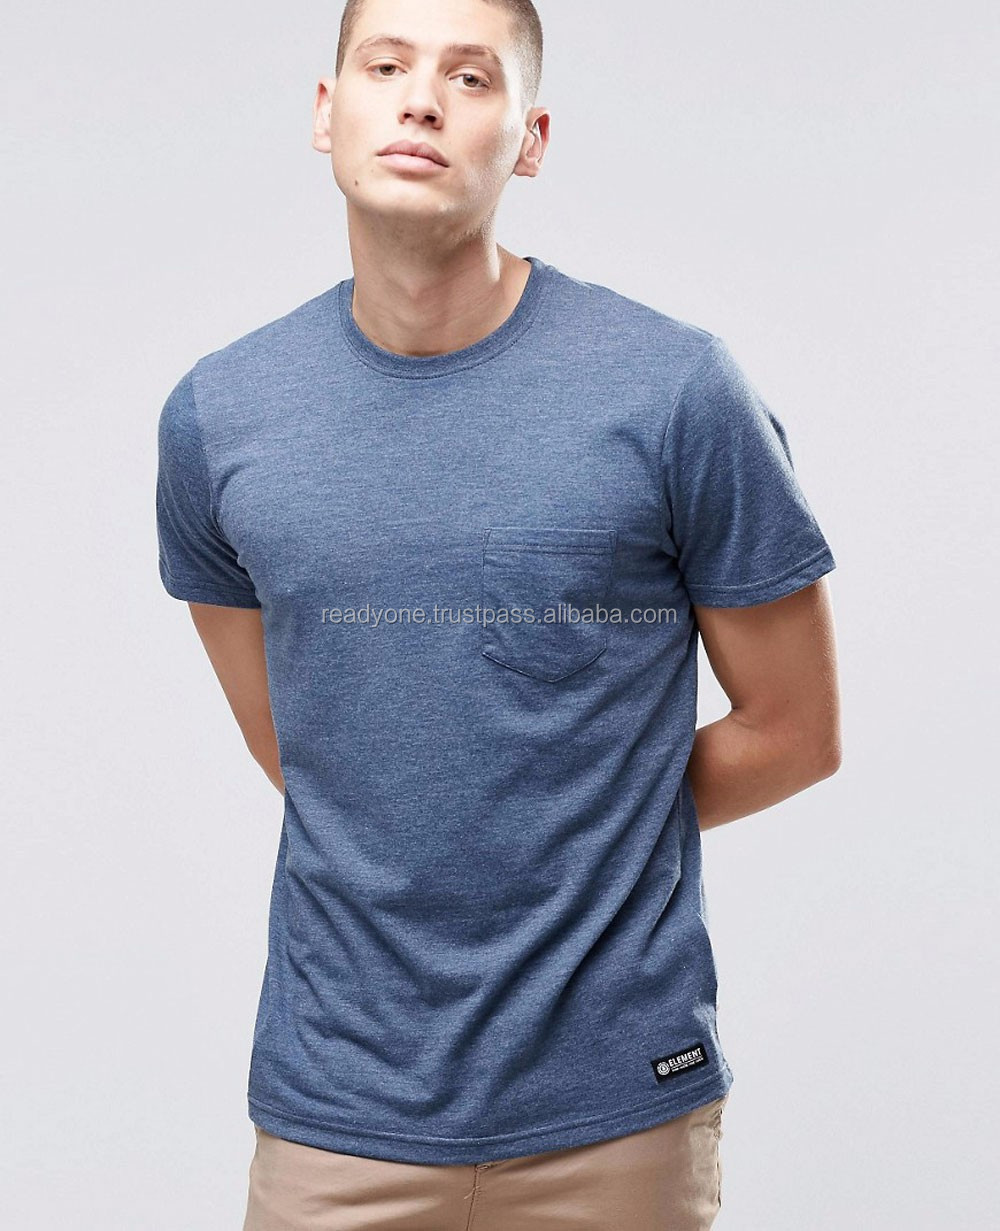 Men Wear - Fashion Wear - Summer Wear - O Neck T-shirts with Front Pocket